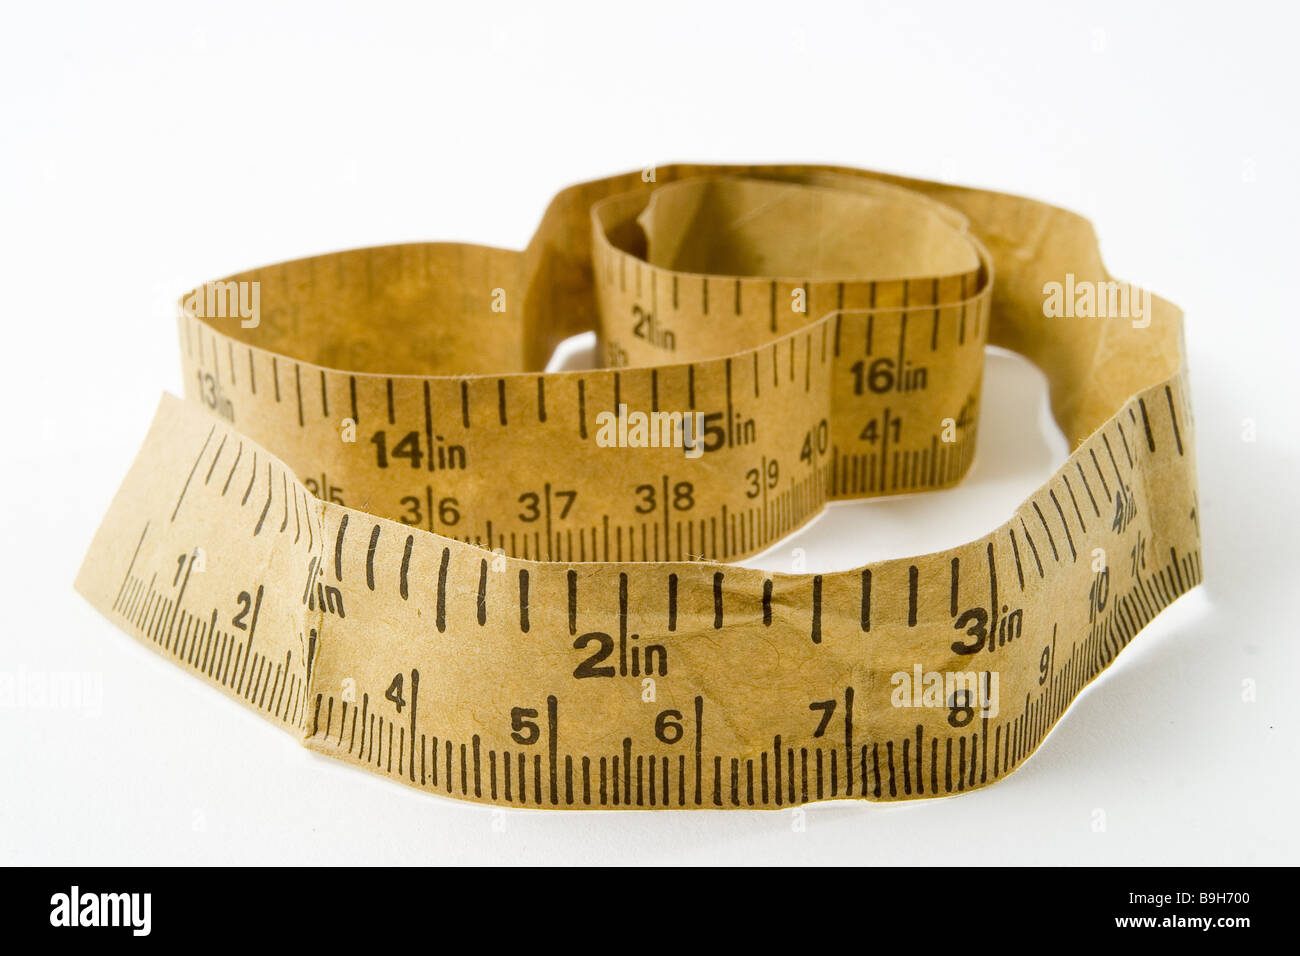 Measurement-band longitudinal-unit Inch  American equipment band diet unit English exactly precision weight-decrease - Stock Image